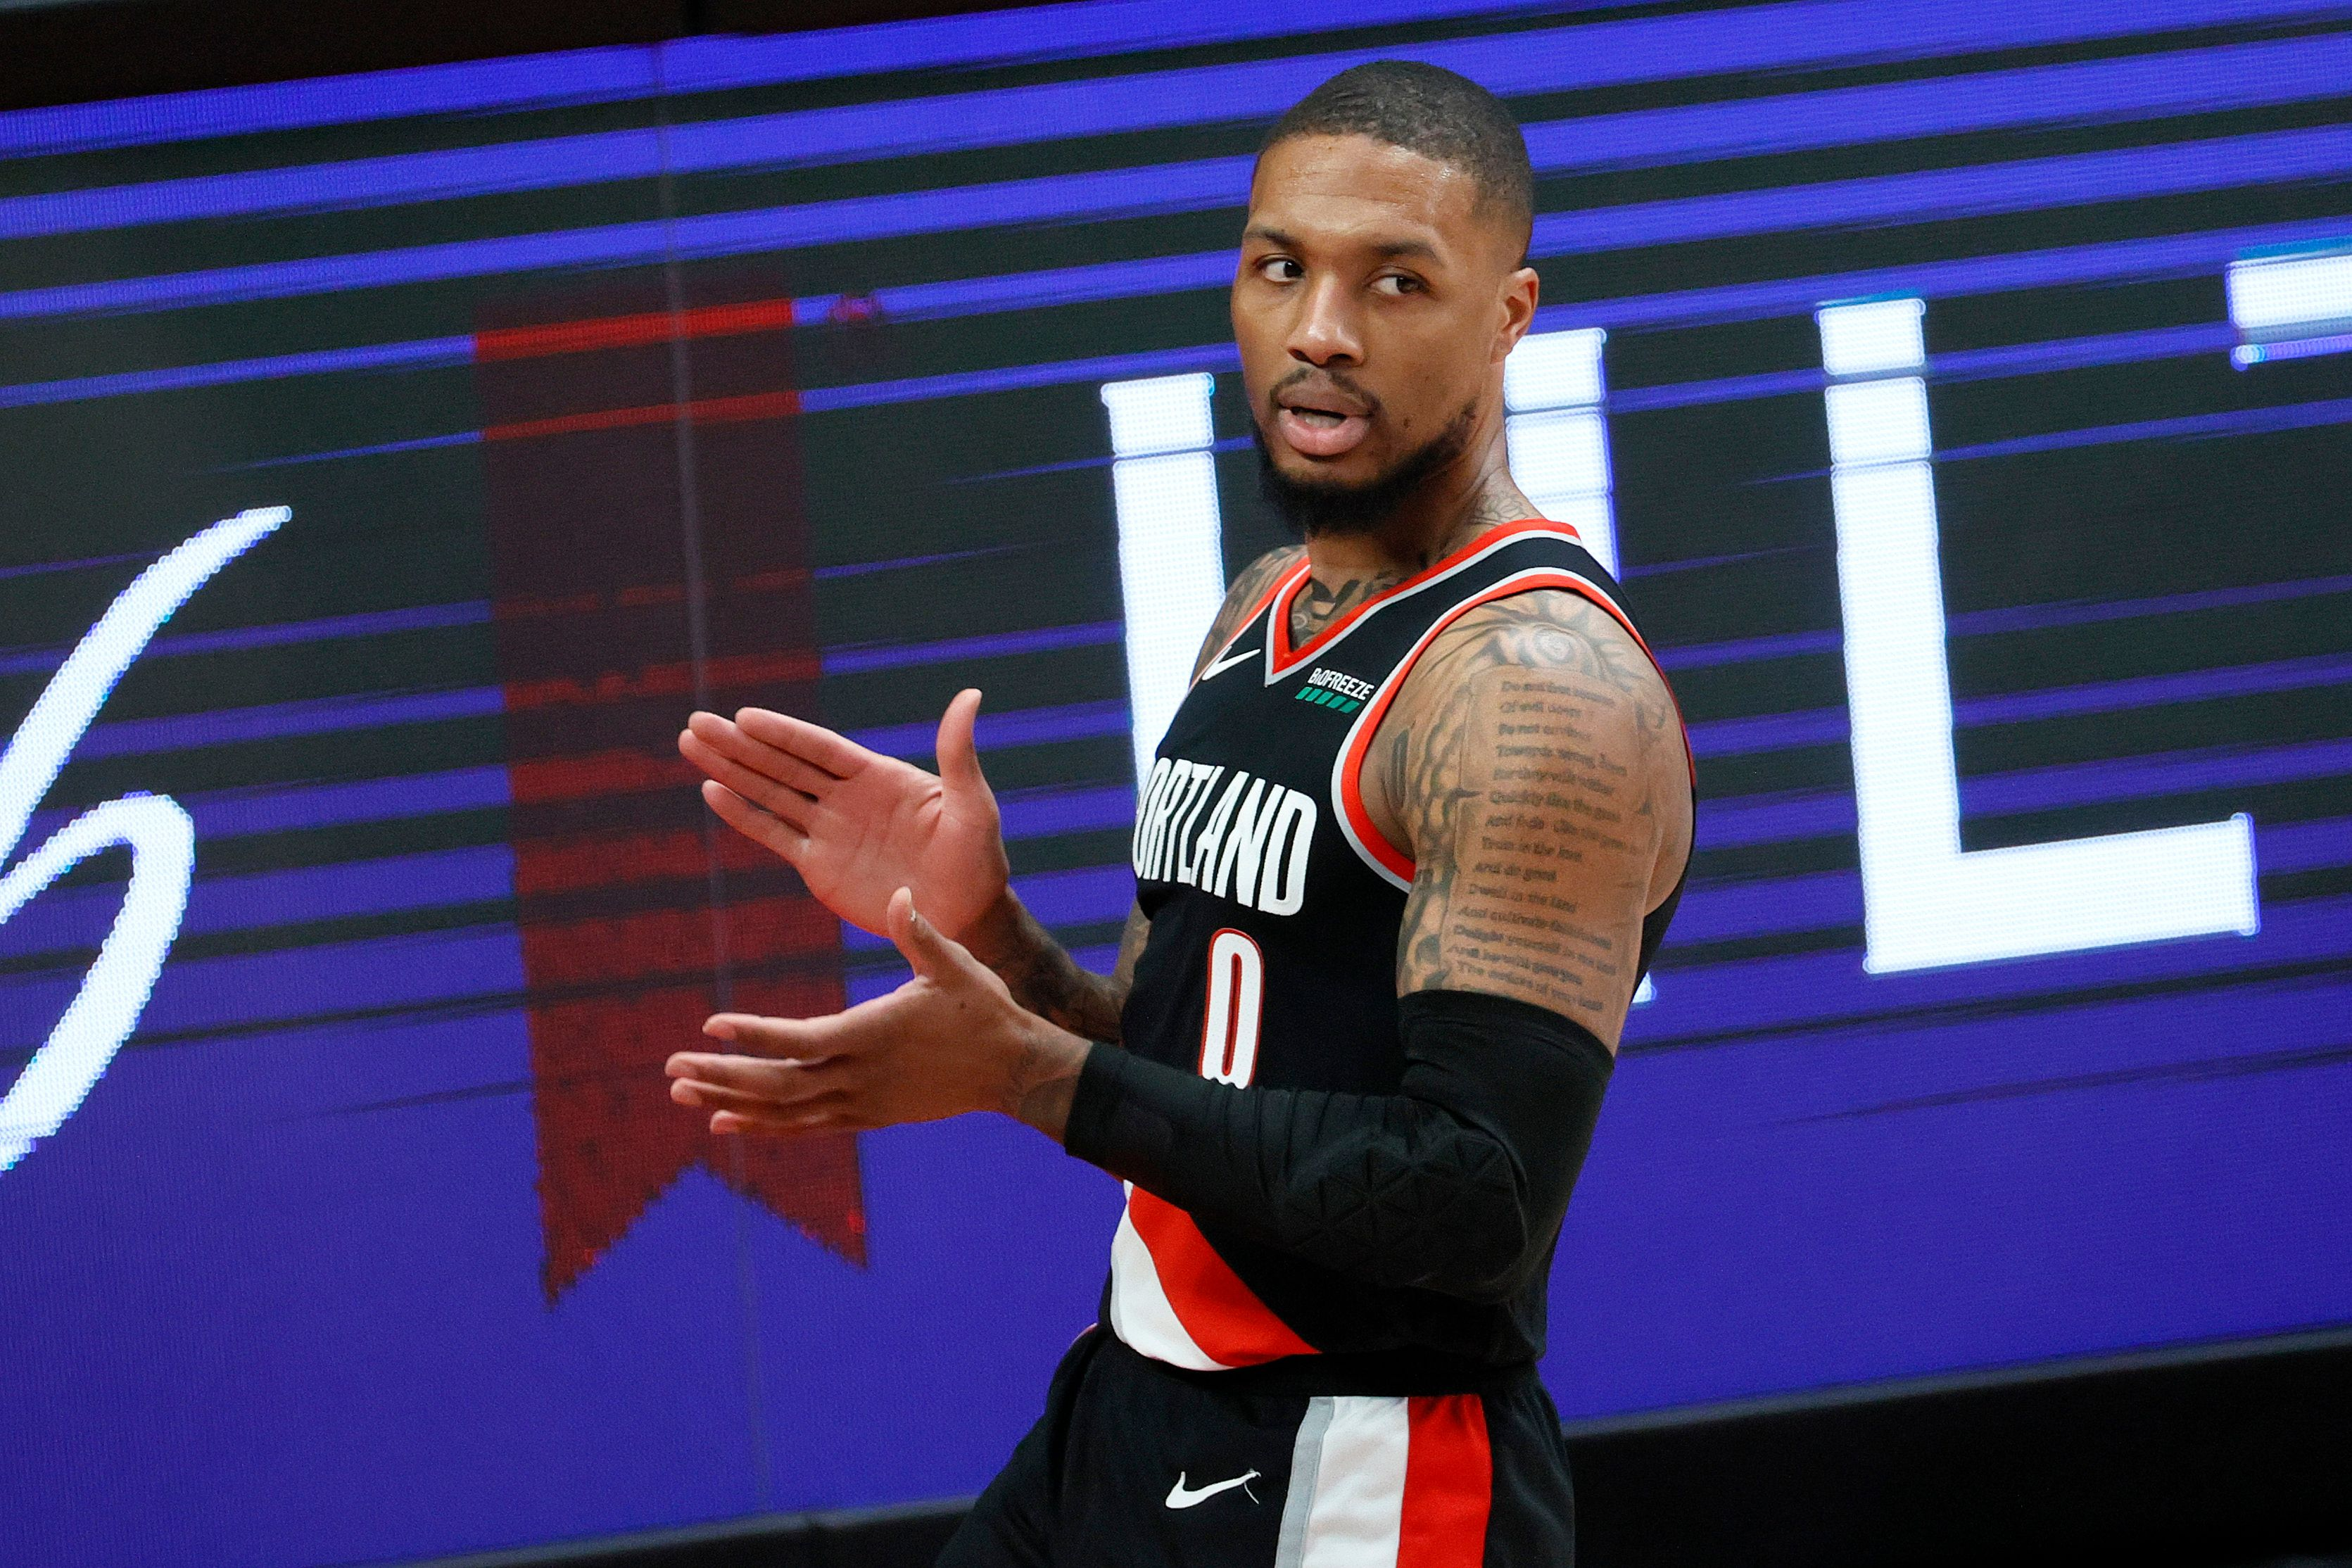 Damian Lillard claps after getting a favorable call